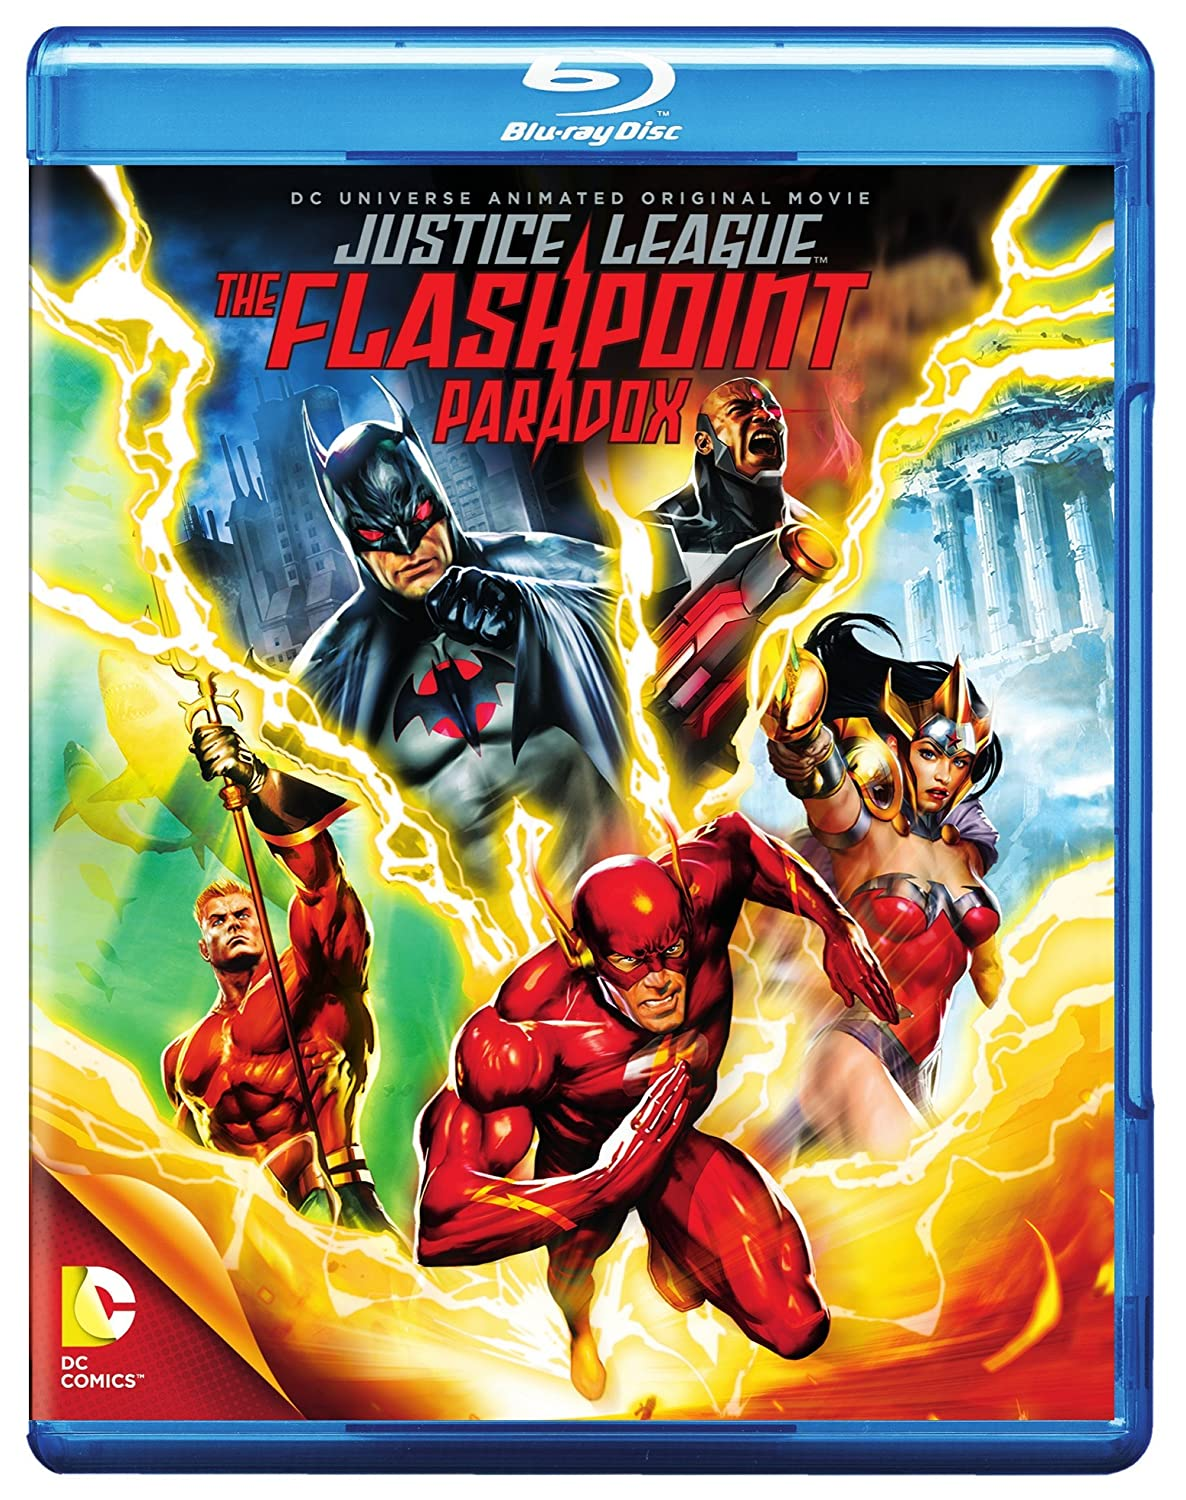 Dcu: Justice League - The Flashpoint Paradox 2 Blu-Ray ...